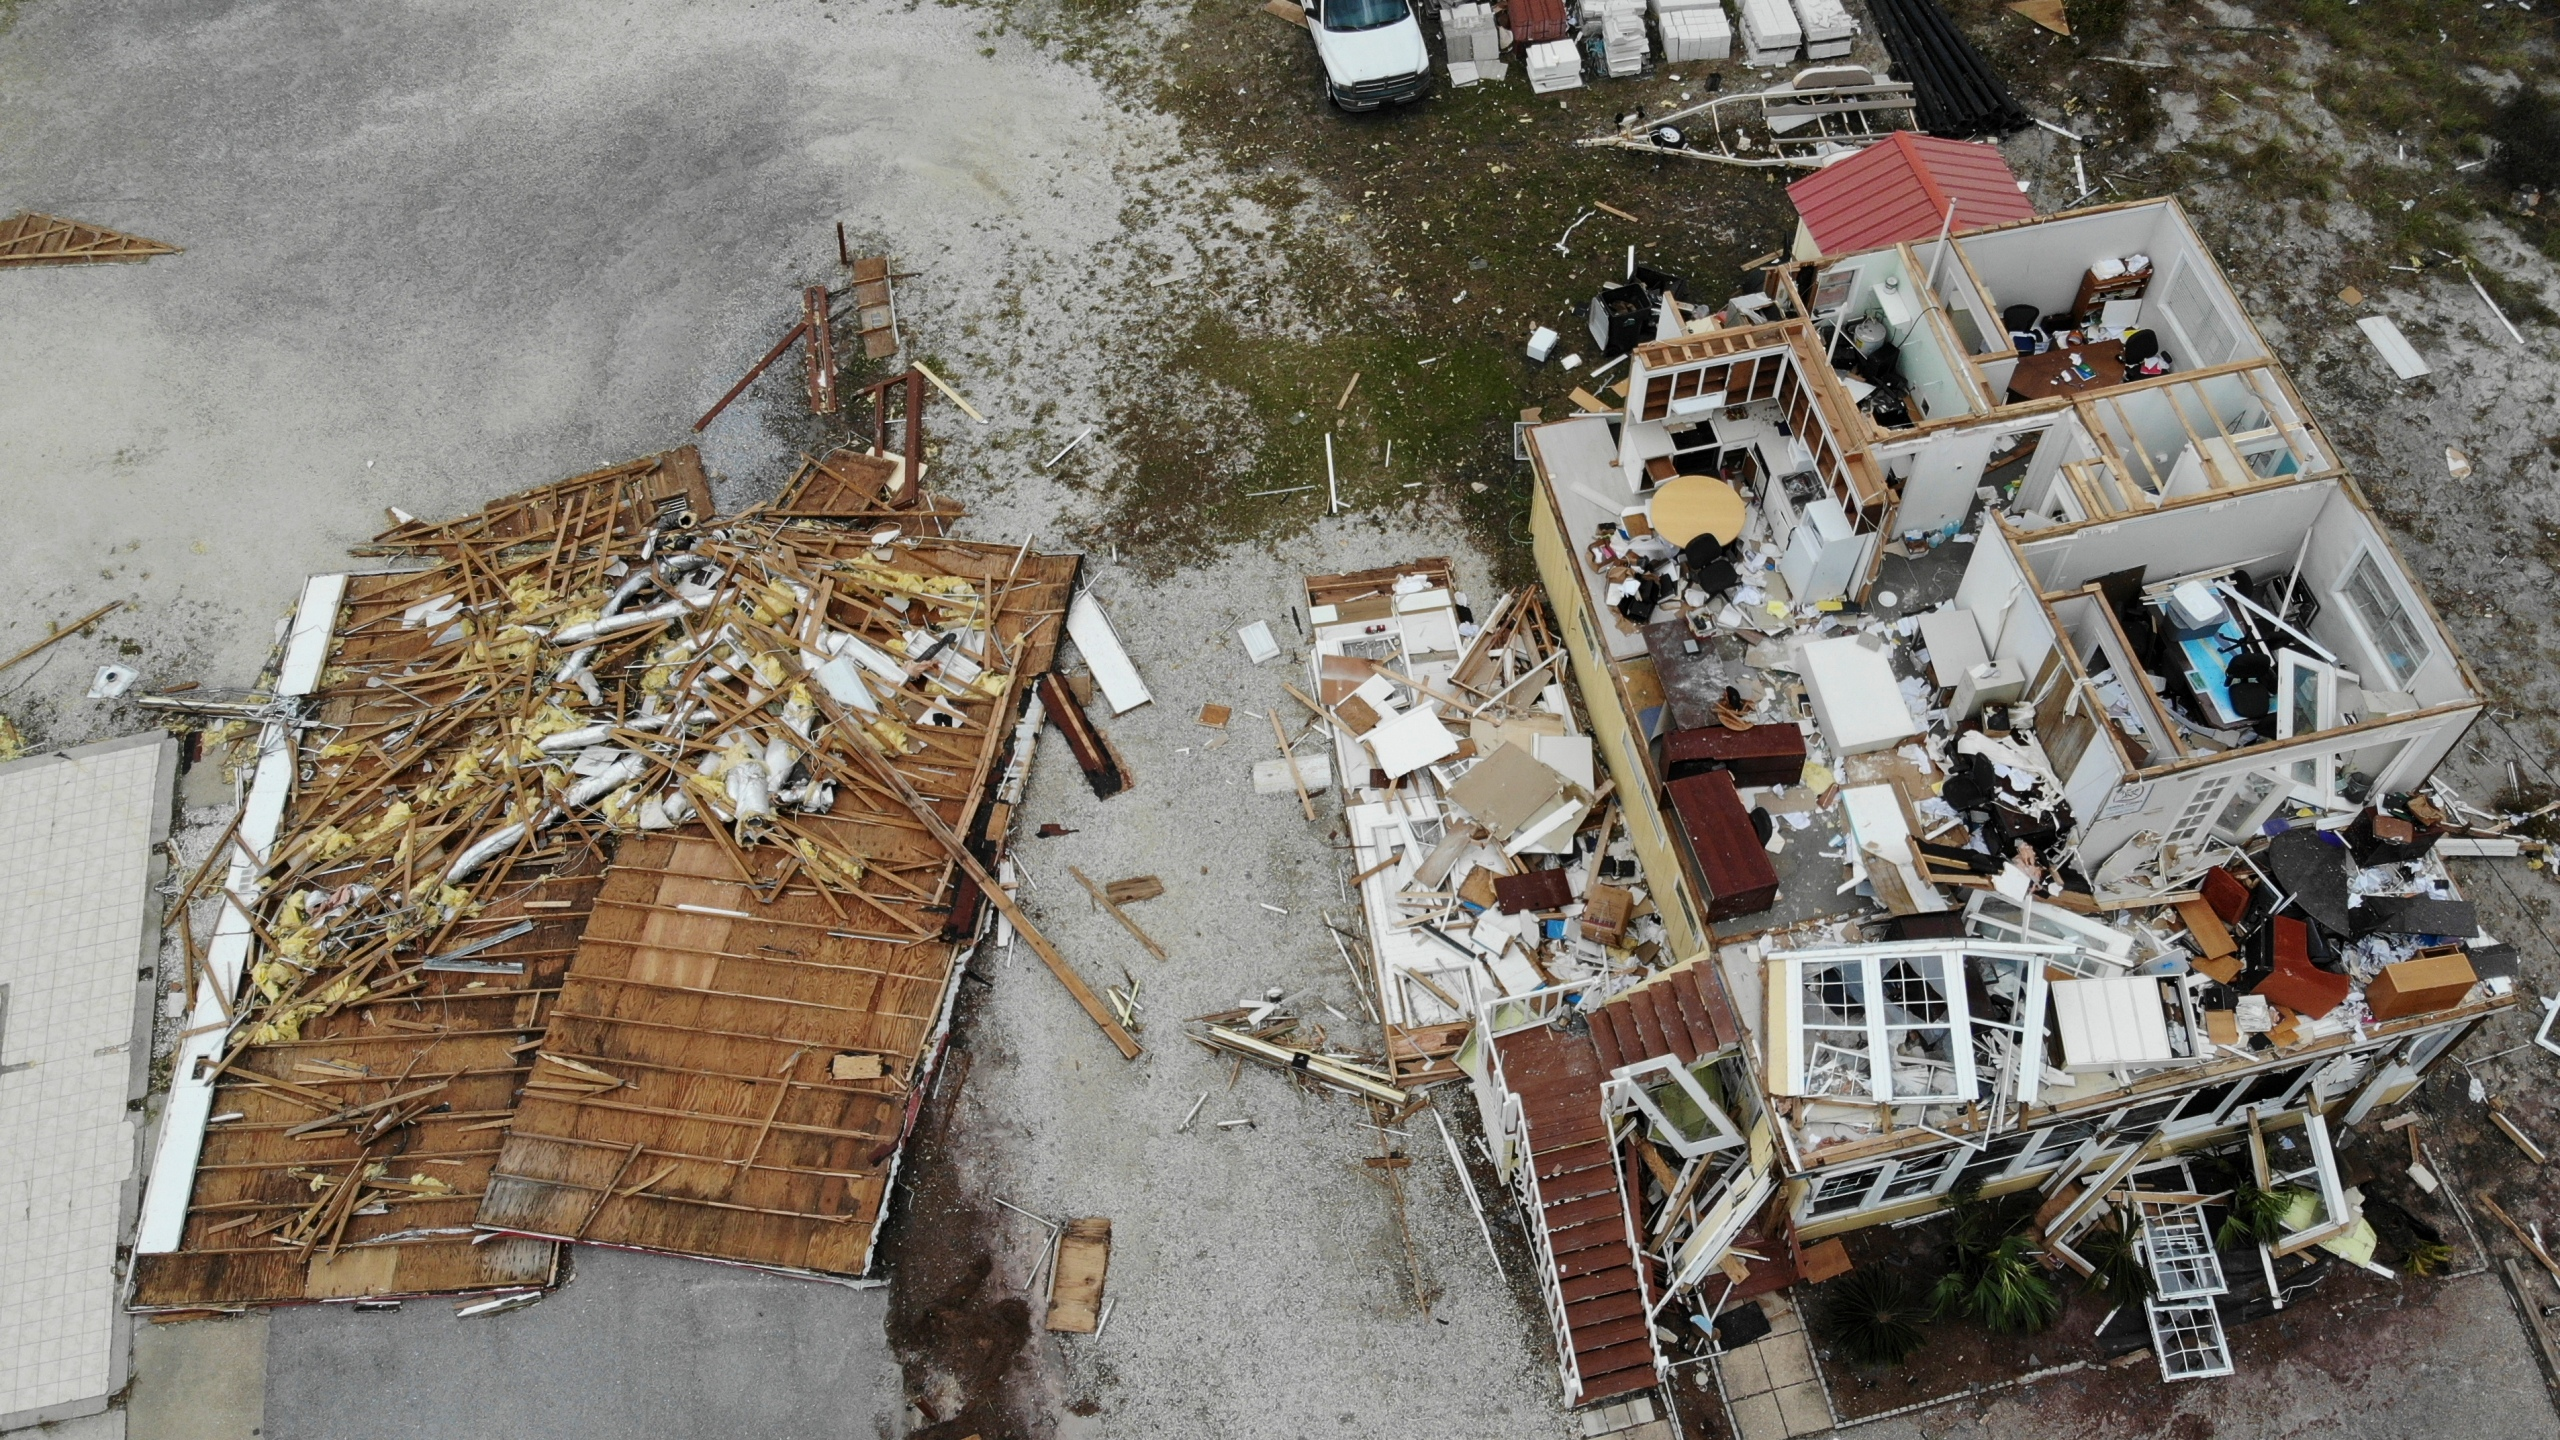 A damaged business is seen in the aftermath of Hurricane Sally on Sept. 17, 2020, in Perdido Key, Florida. (Angie Wang / Associated Press)